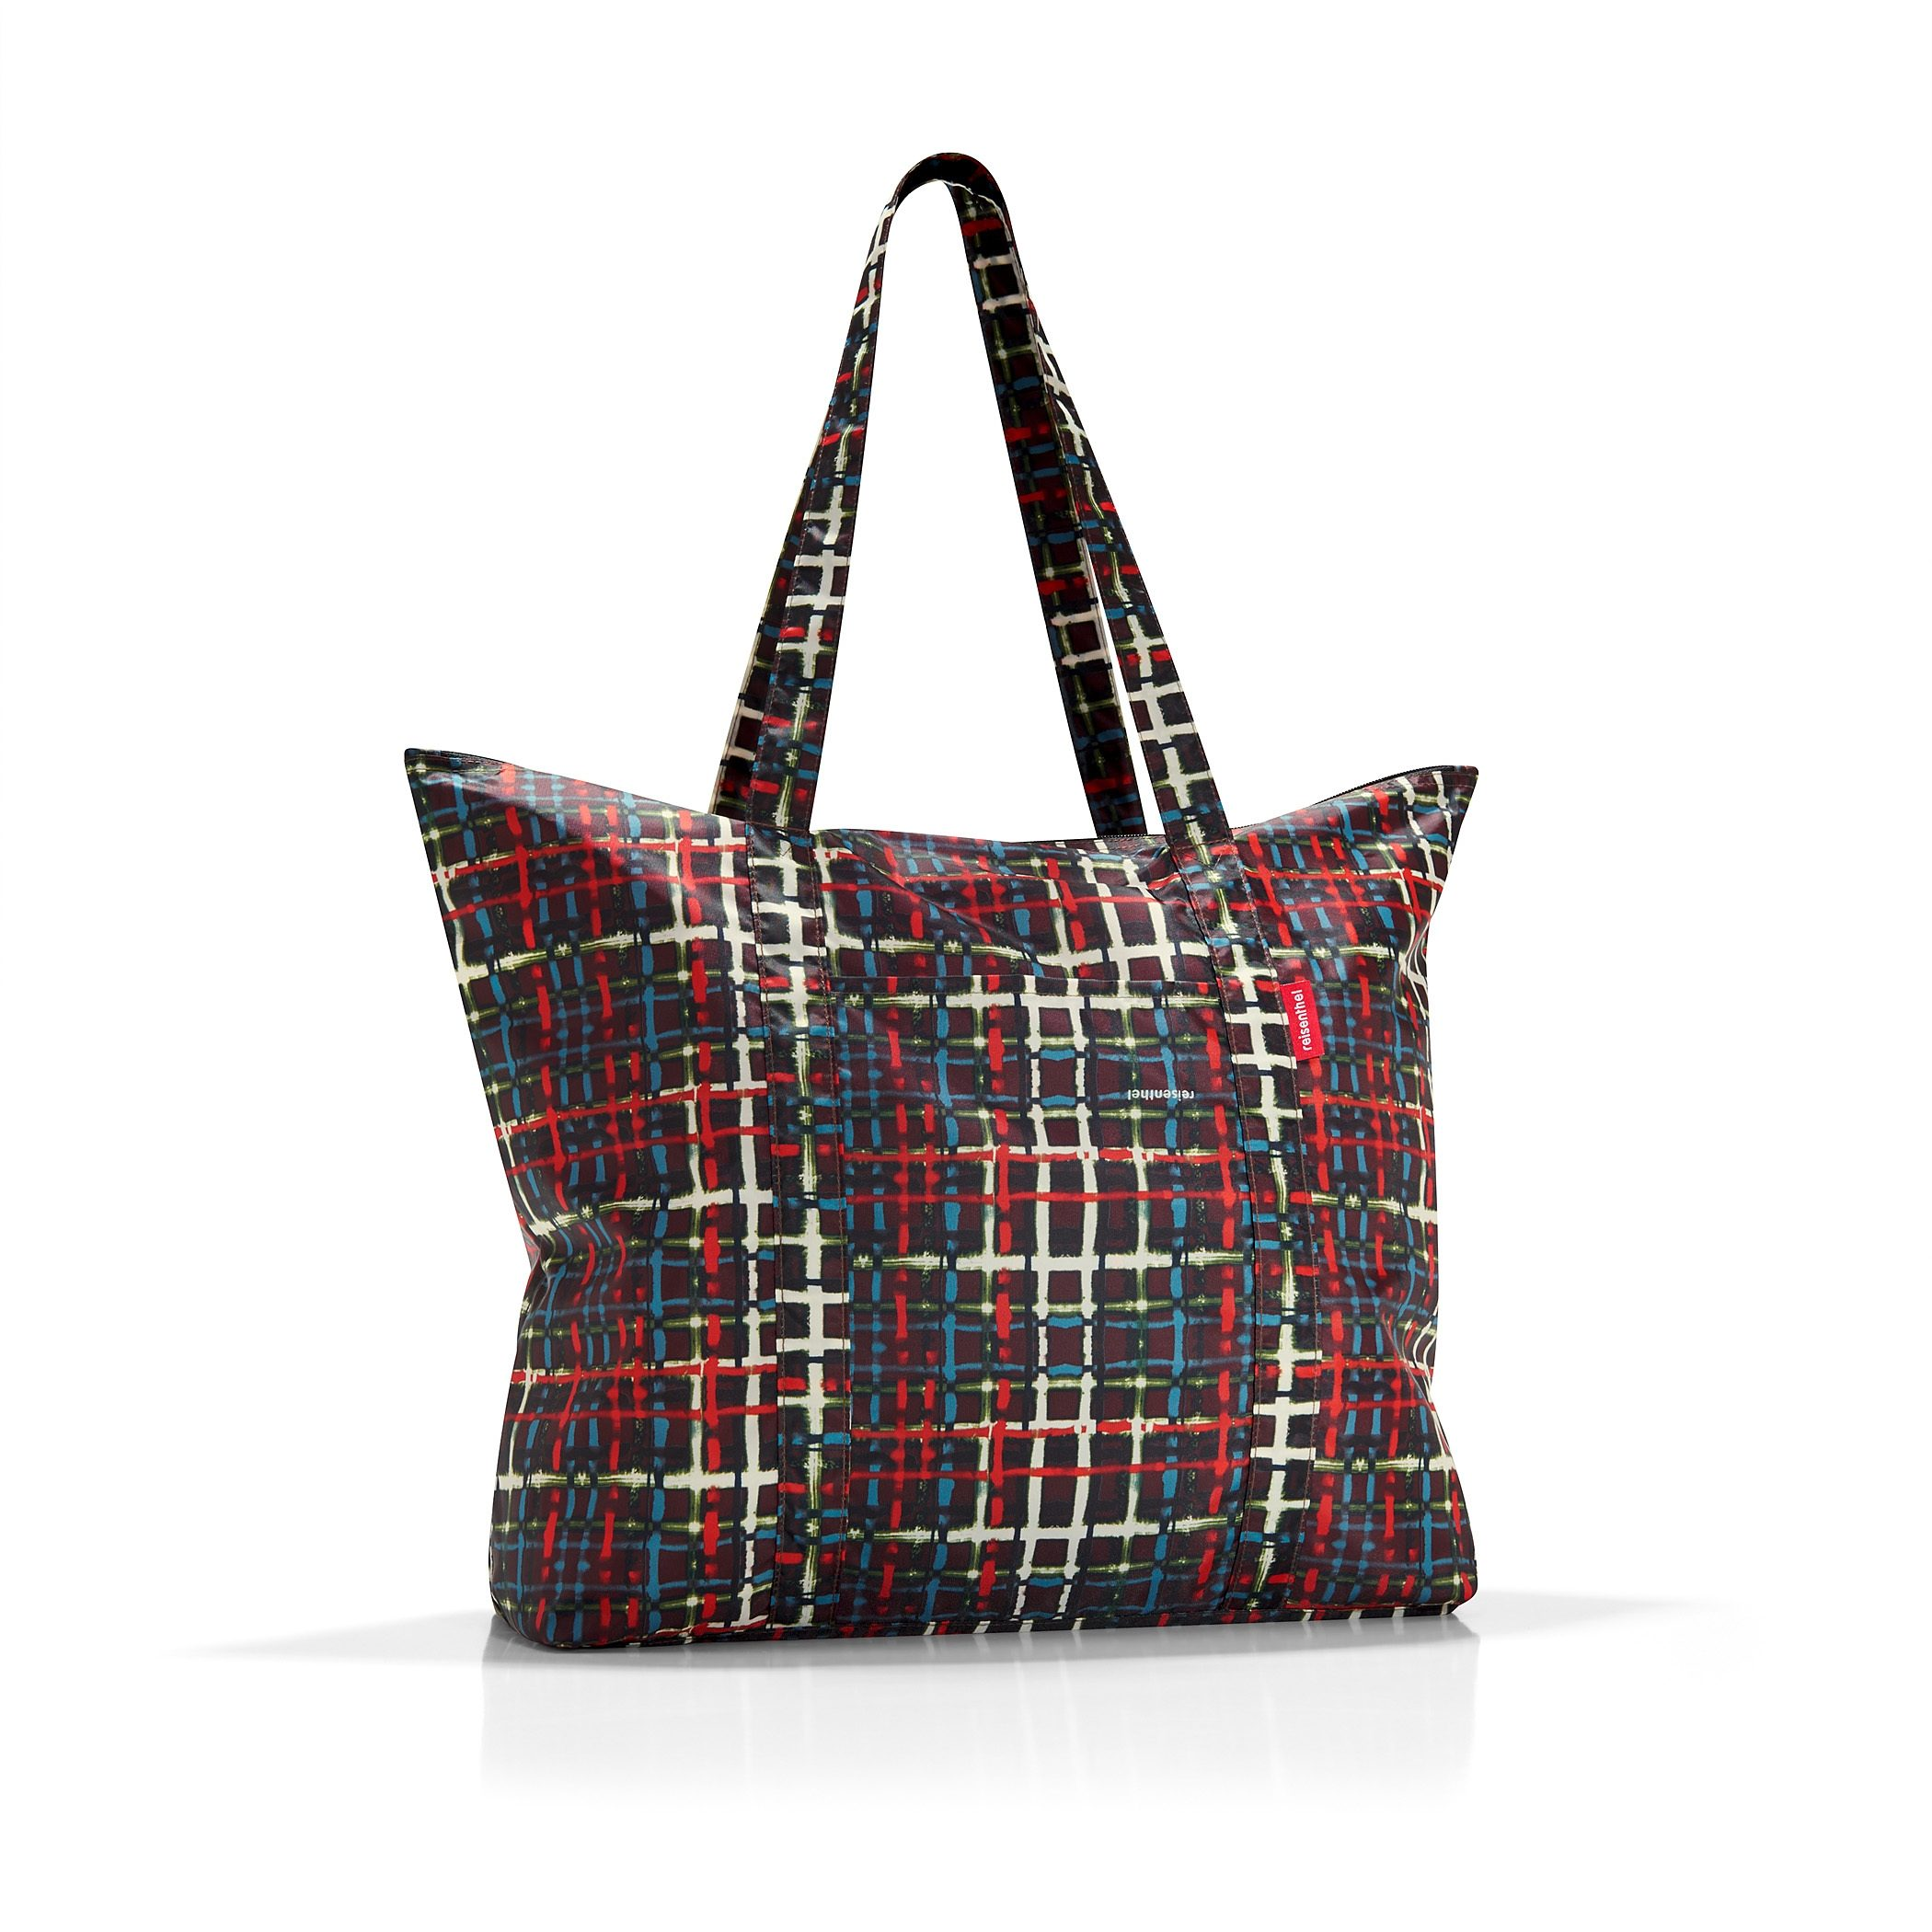 REISENTHEL® Reisetasche »mini maxi travelshopper wool«